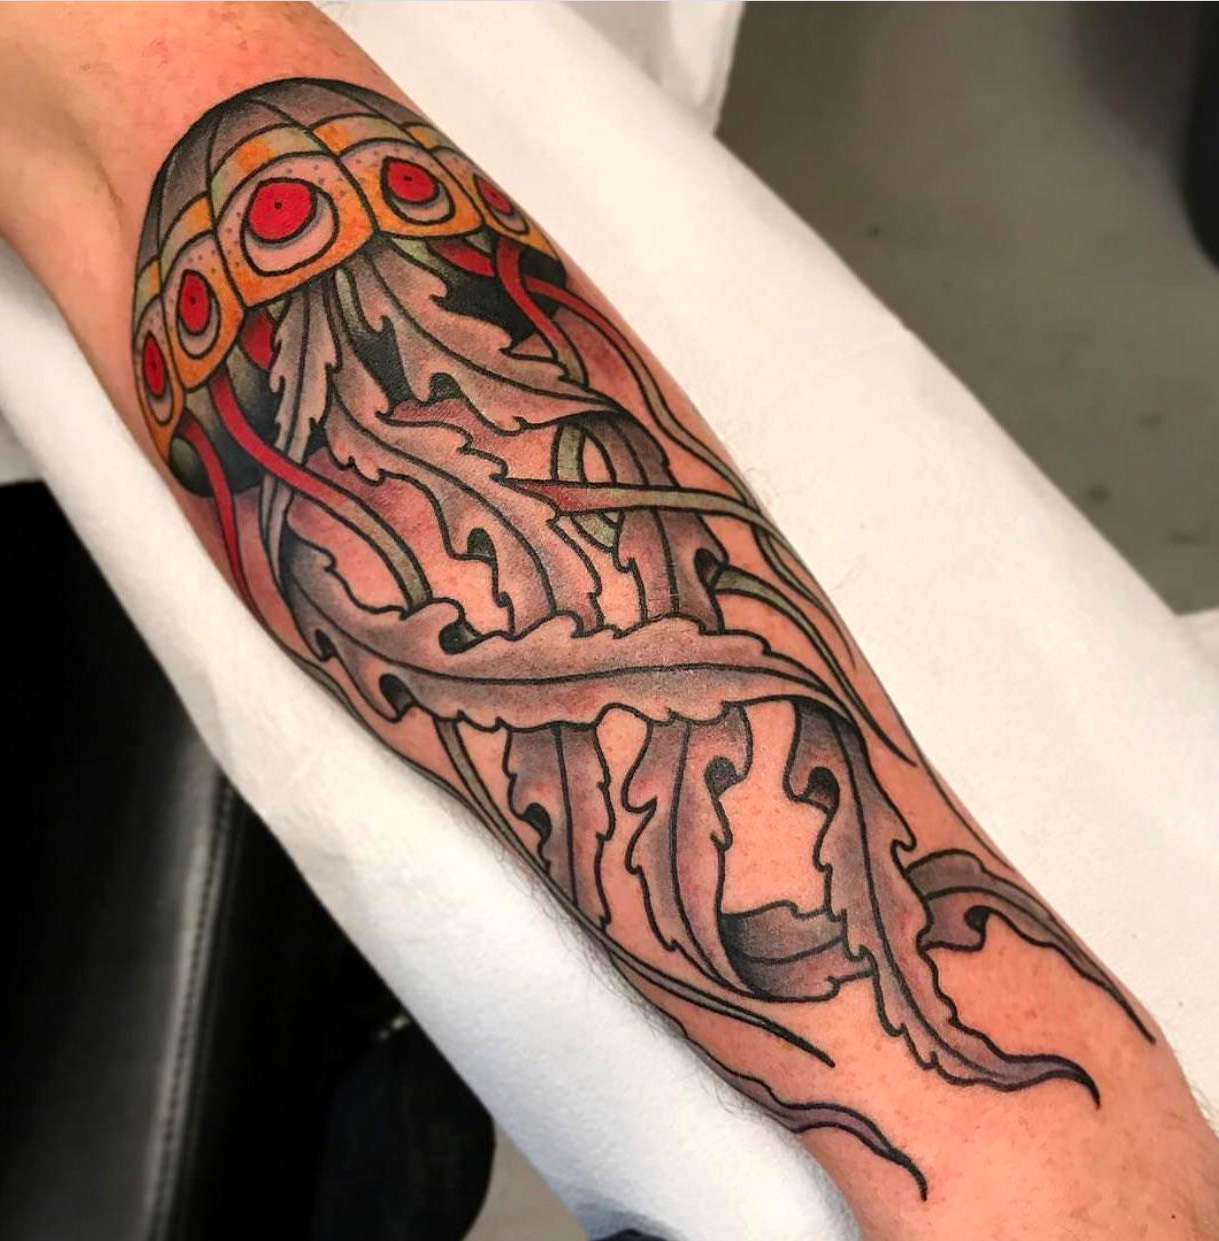 Jellyfish done by zach roman at black moon tattoo in for Tattoo madison wi